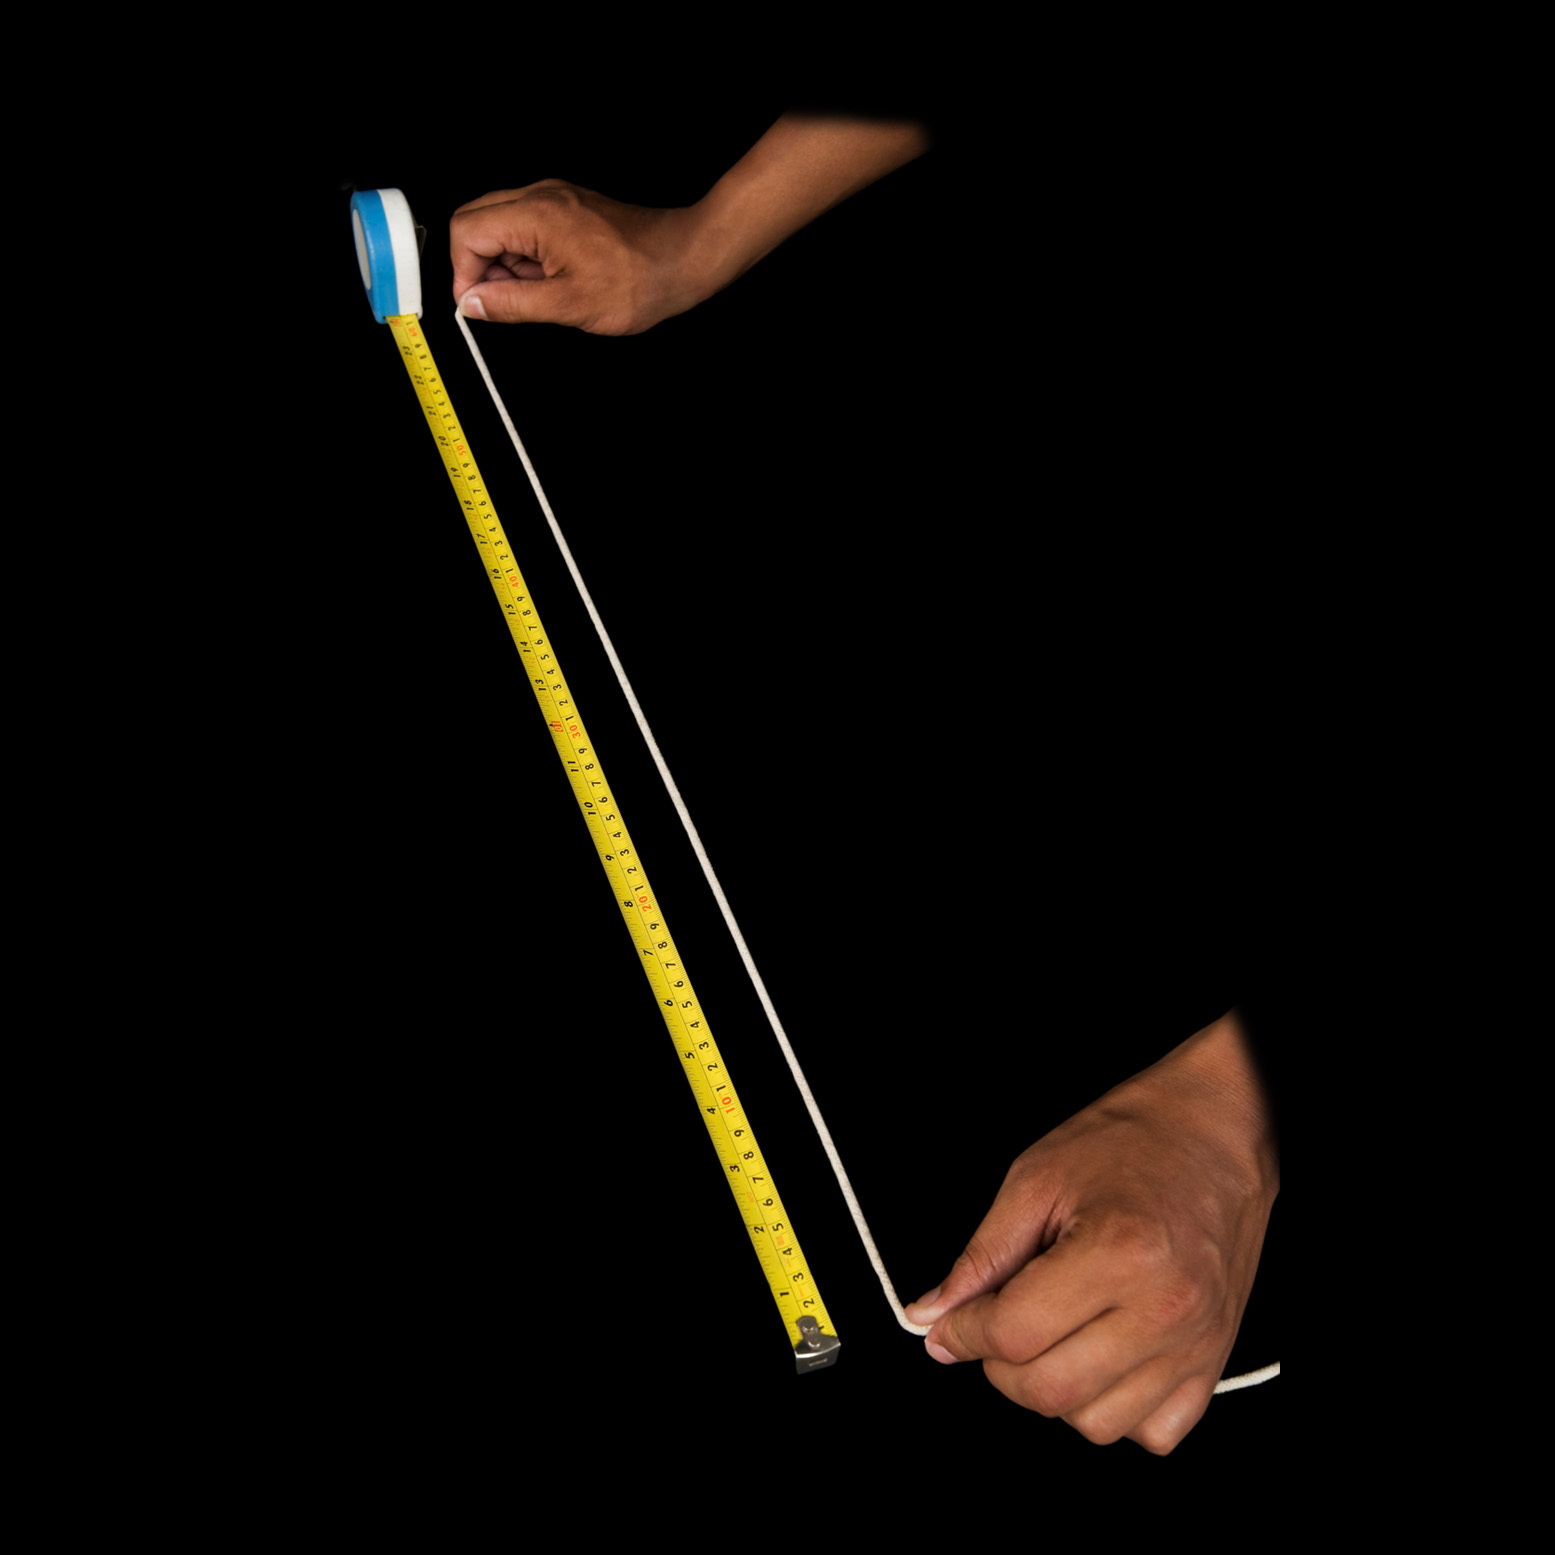 Two hands holding a string agains a tape measure